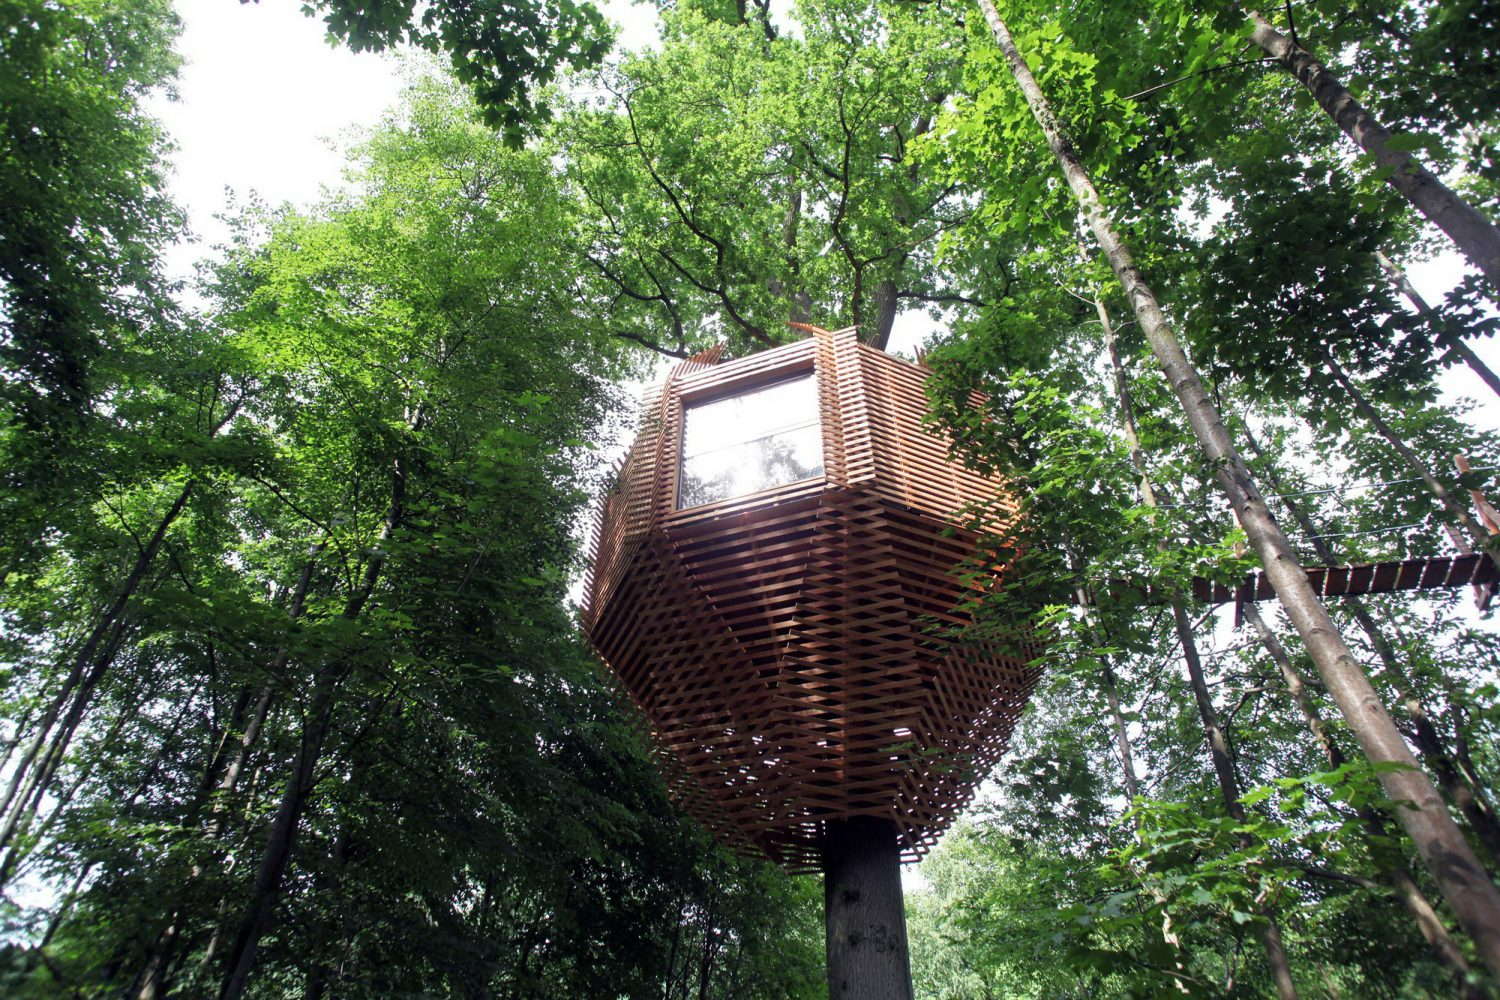 ORIGIN Tree House Hotel by Atelier LAVIT